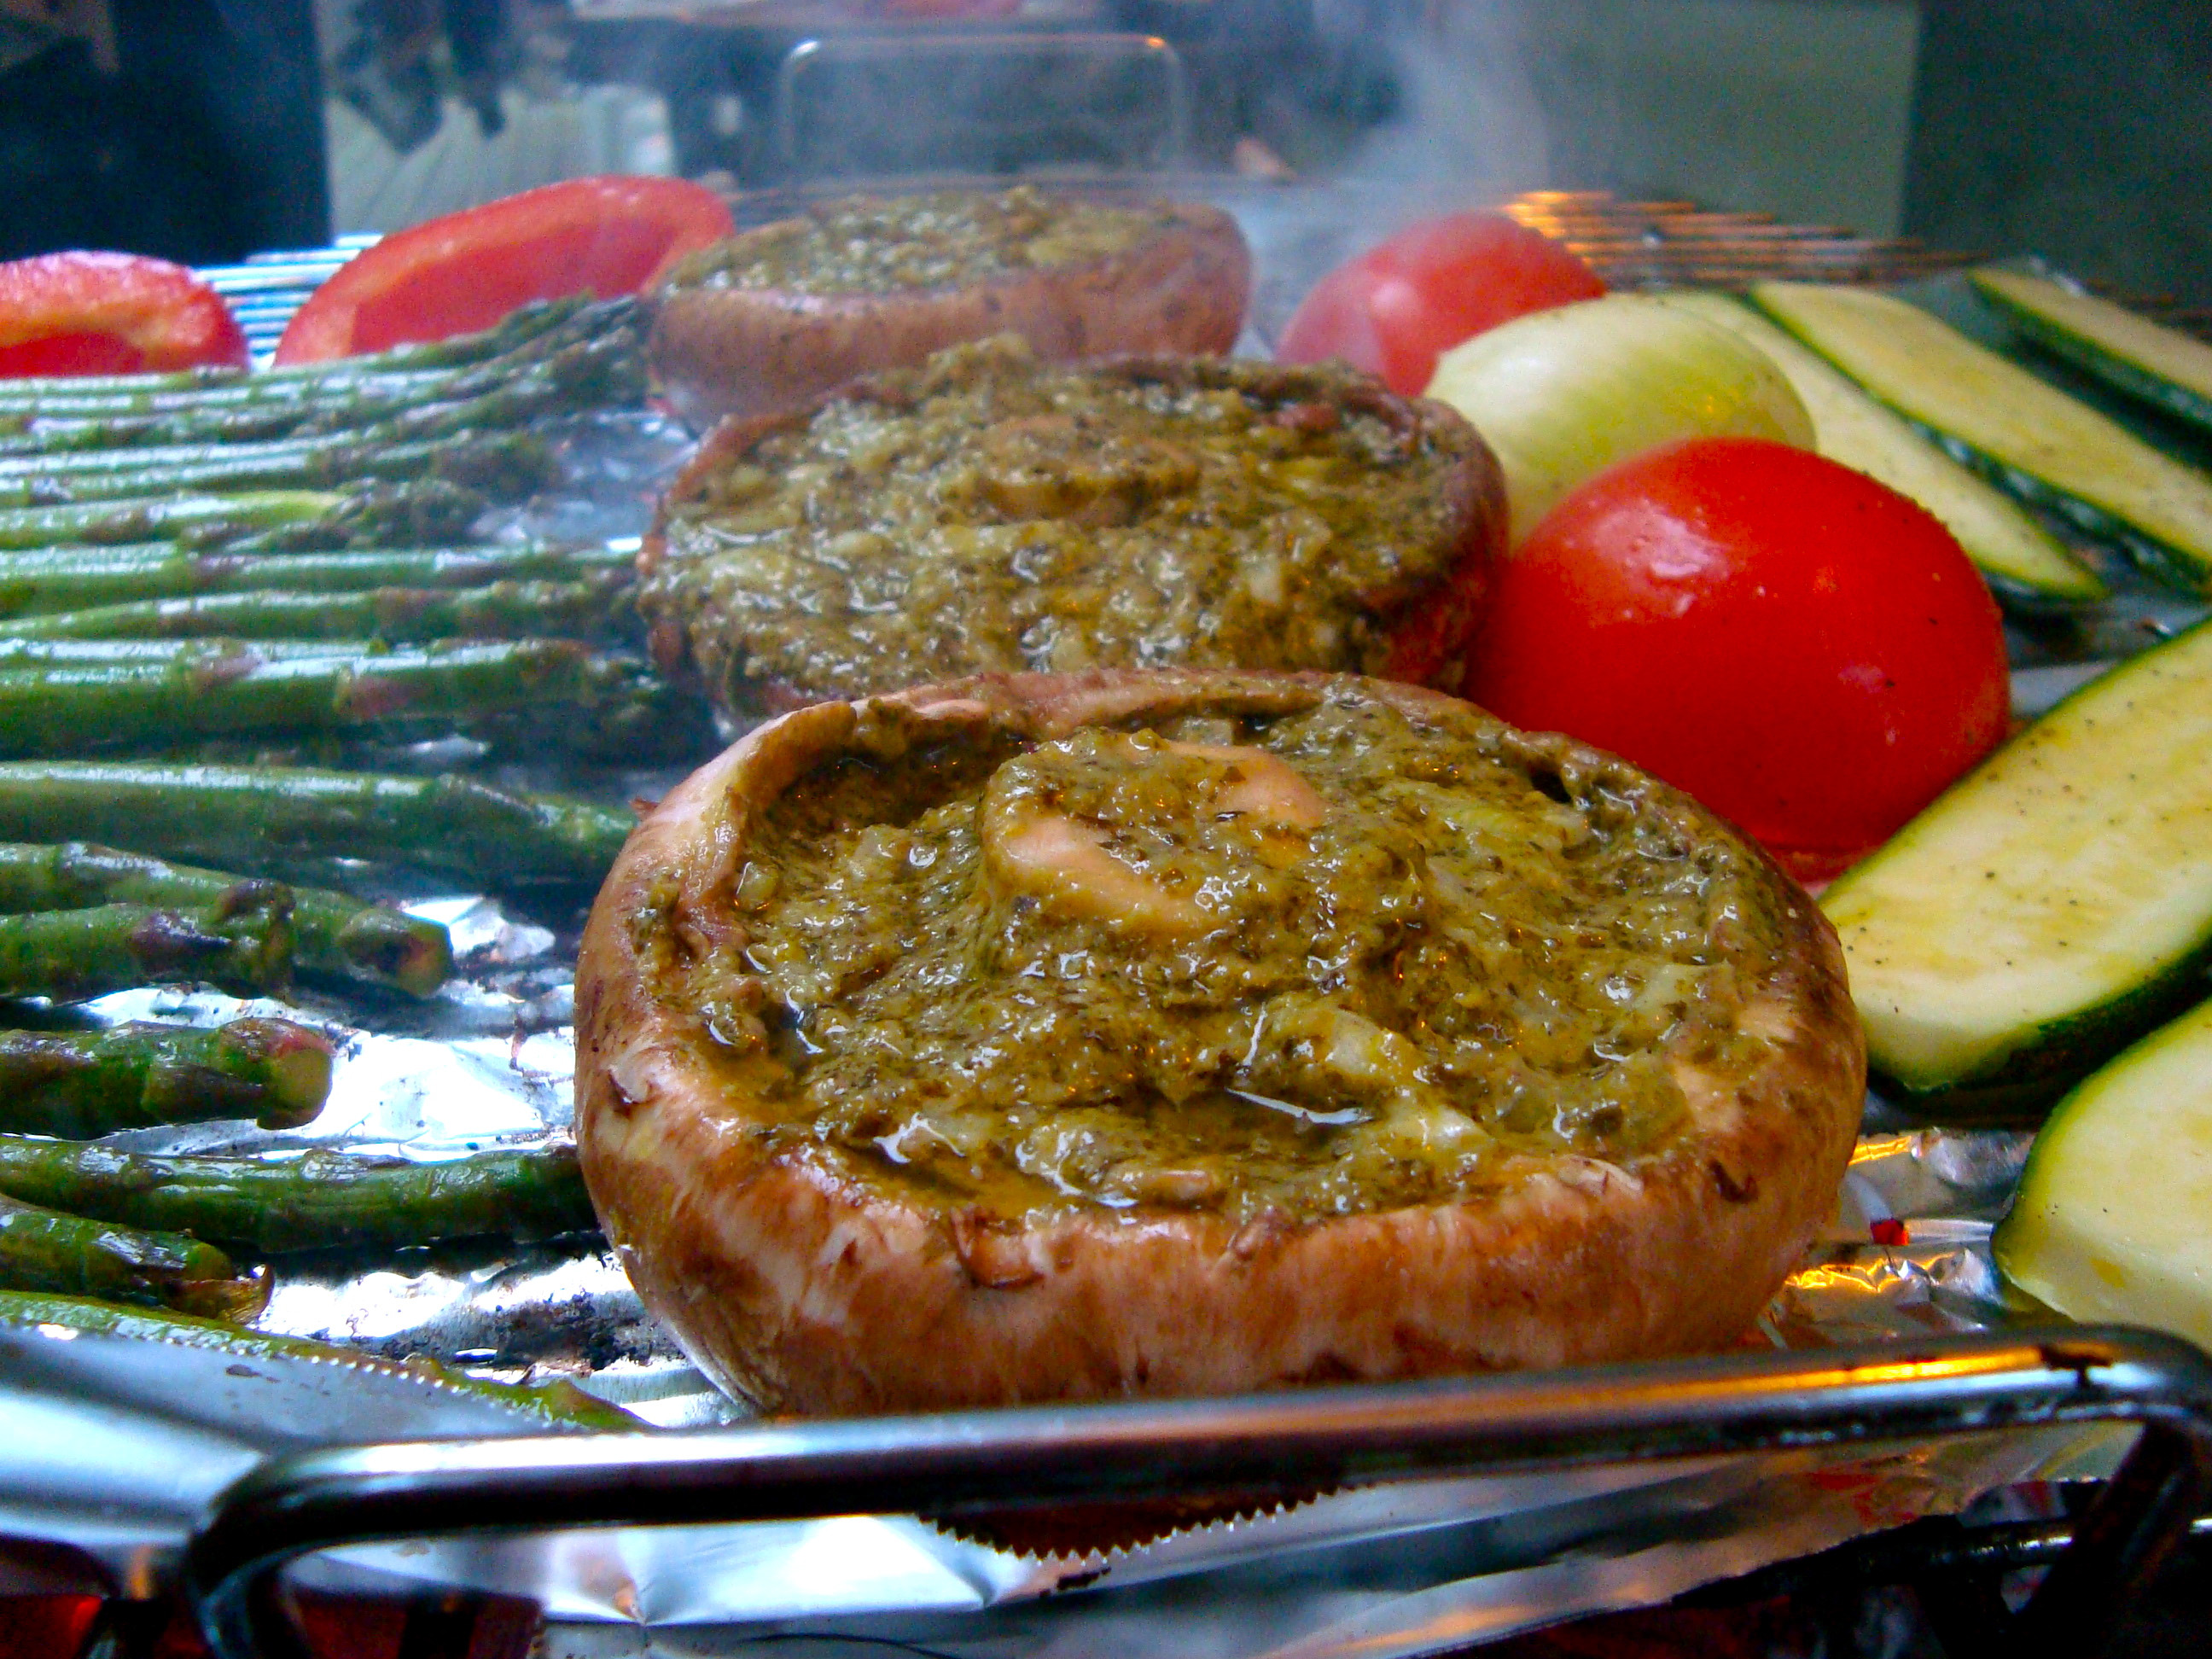 Grilled Stuffed Portobello Mushrooms  Grilled portobello mushrooms stuffed with pesto